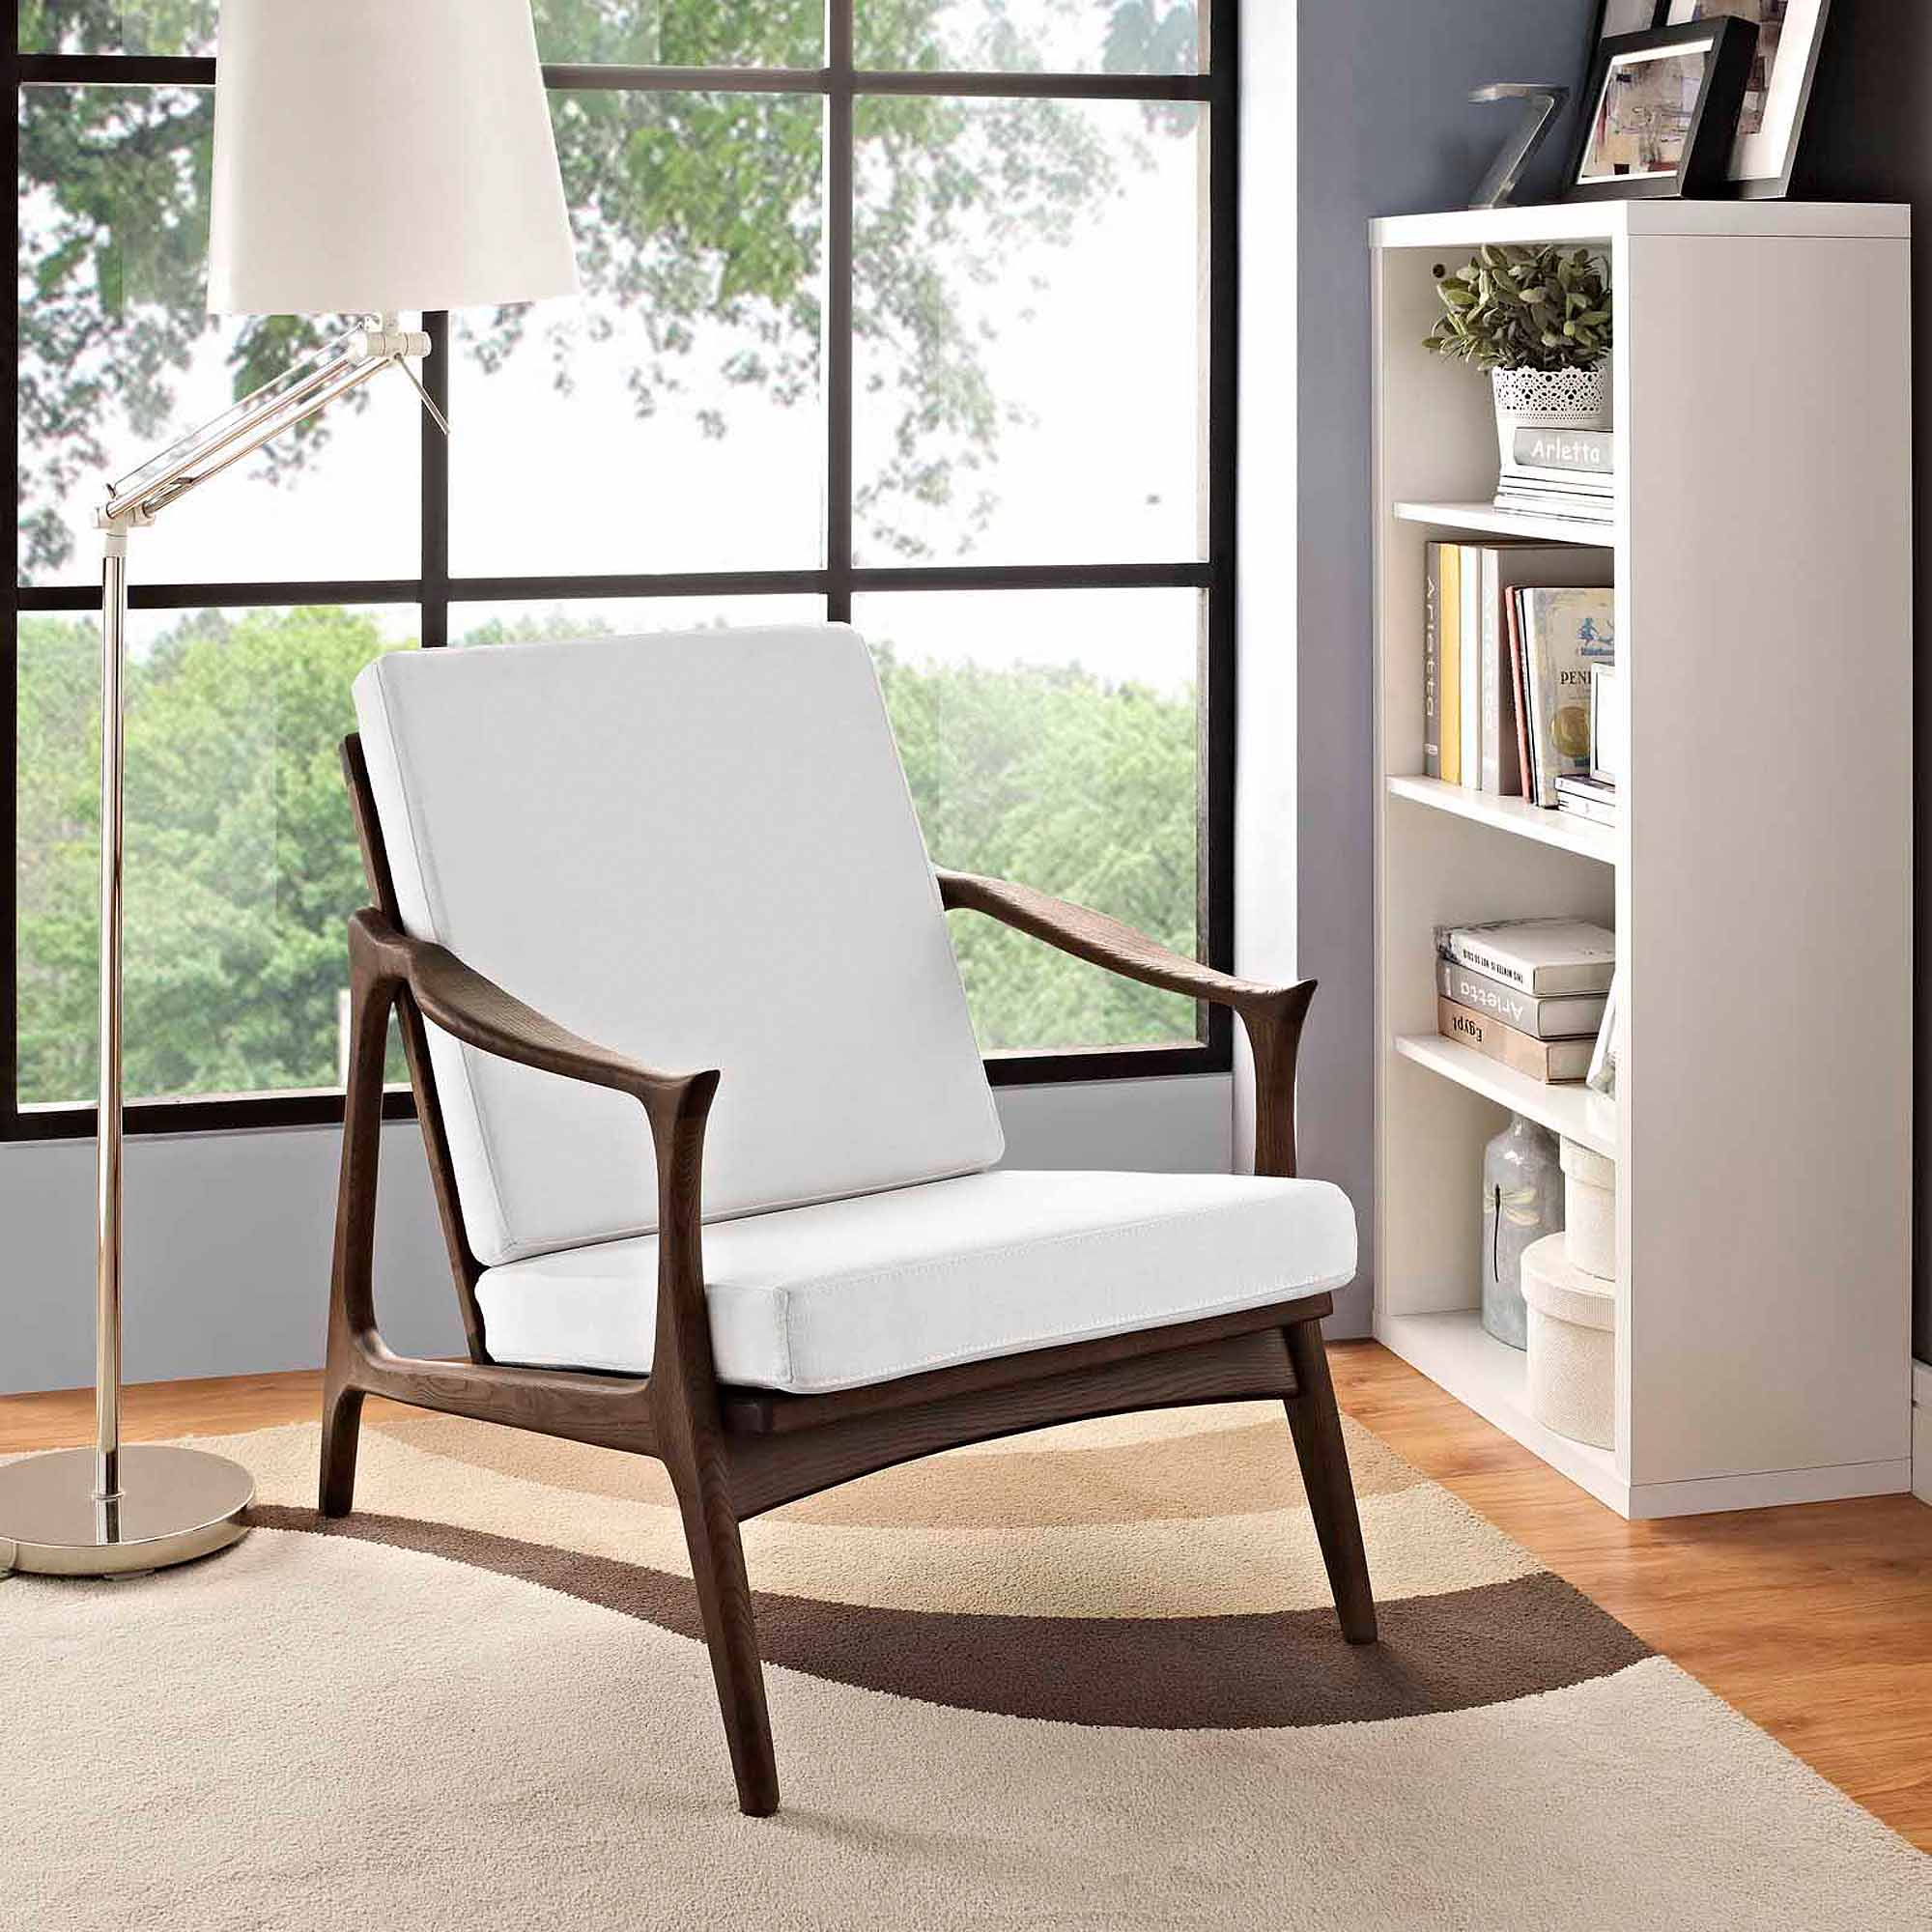 Modway Pace Armchair with Removable Cushions, Multiple Colors ...